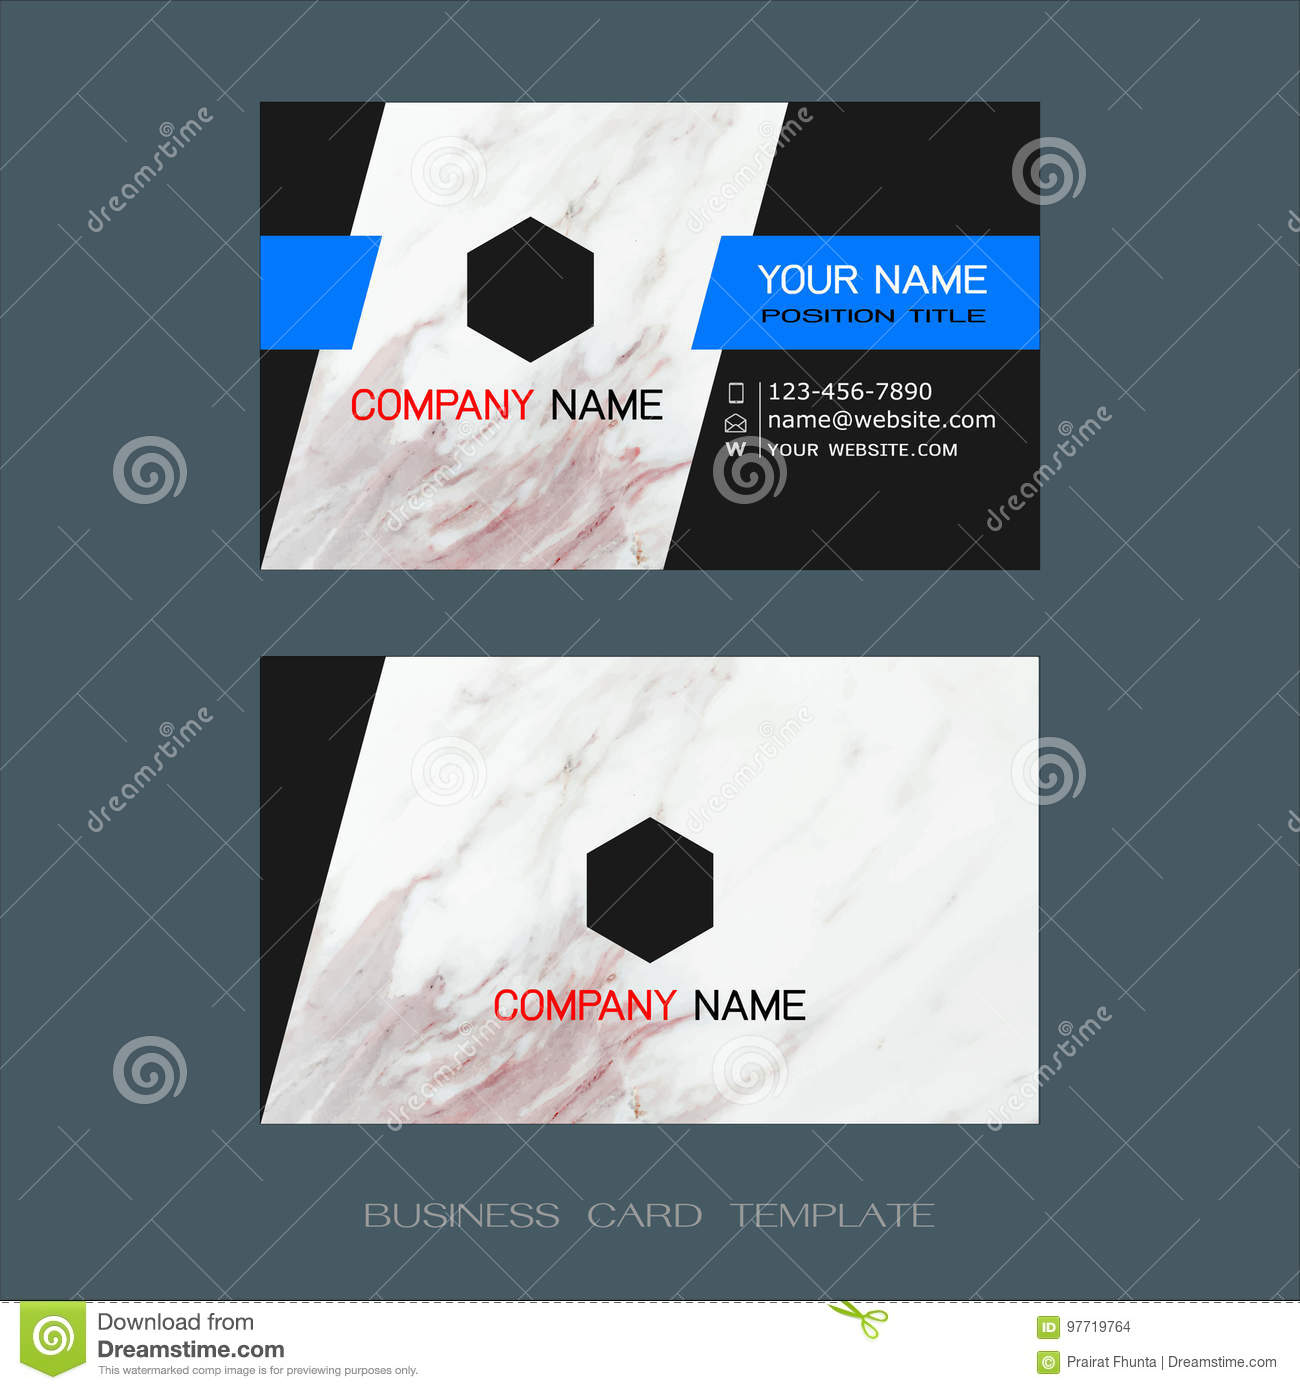 Modern Designer Business Card Layout Templates Stock Vector - Business card layout template